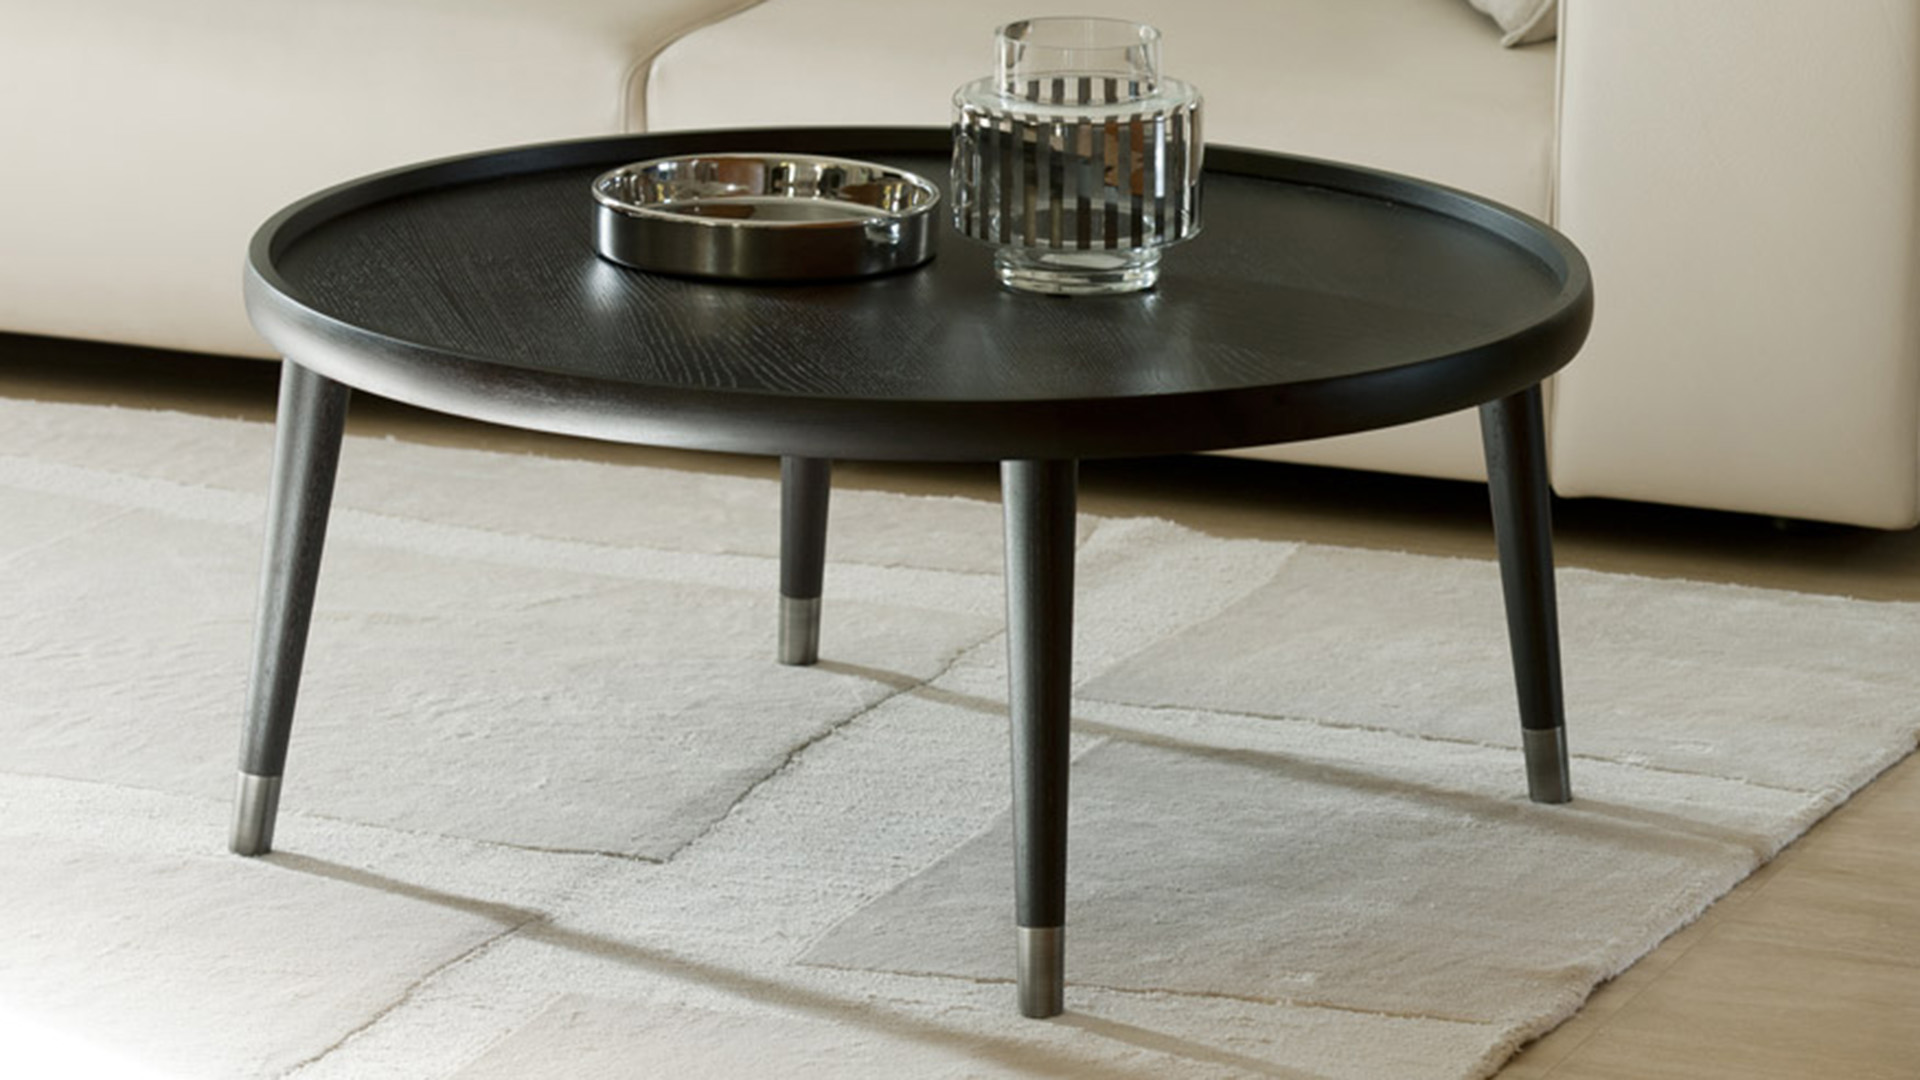 Porada bign 80 tables basses - Table basse ouvrable ...